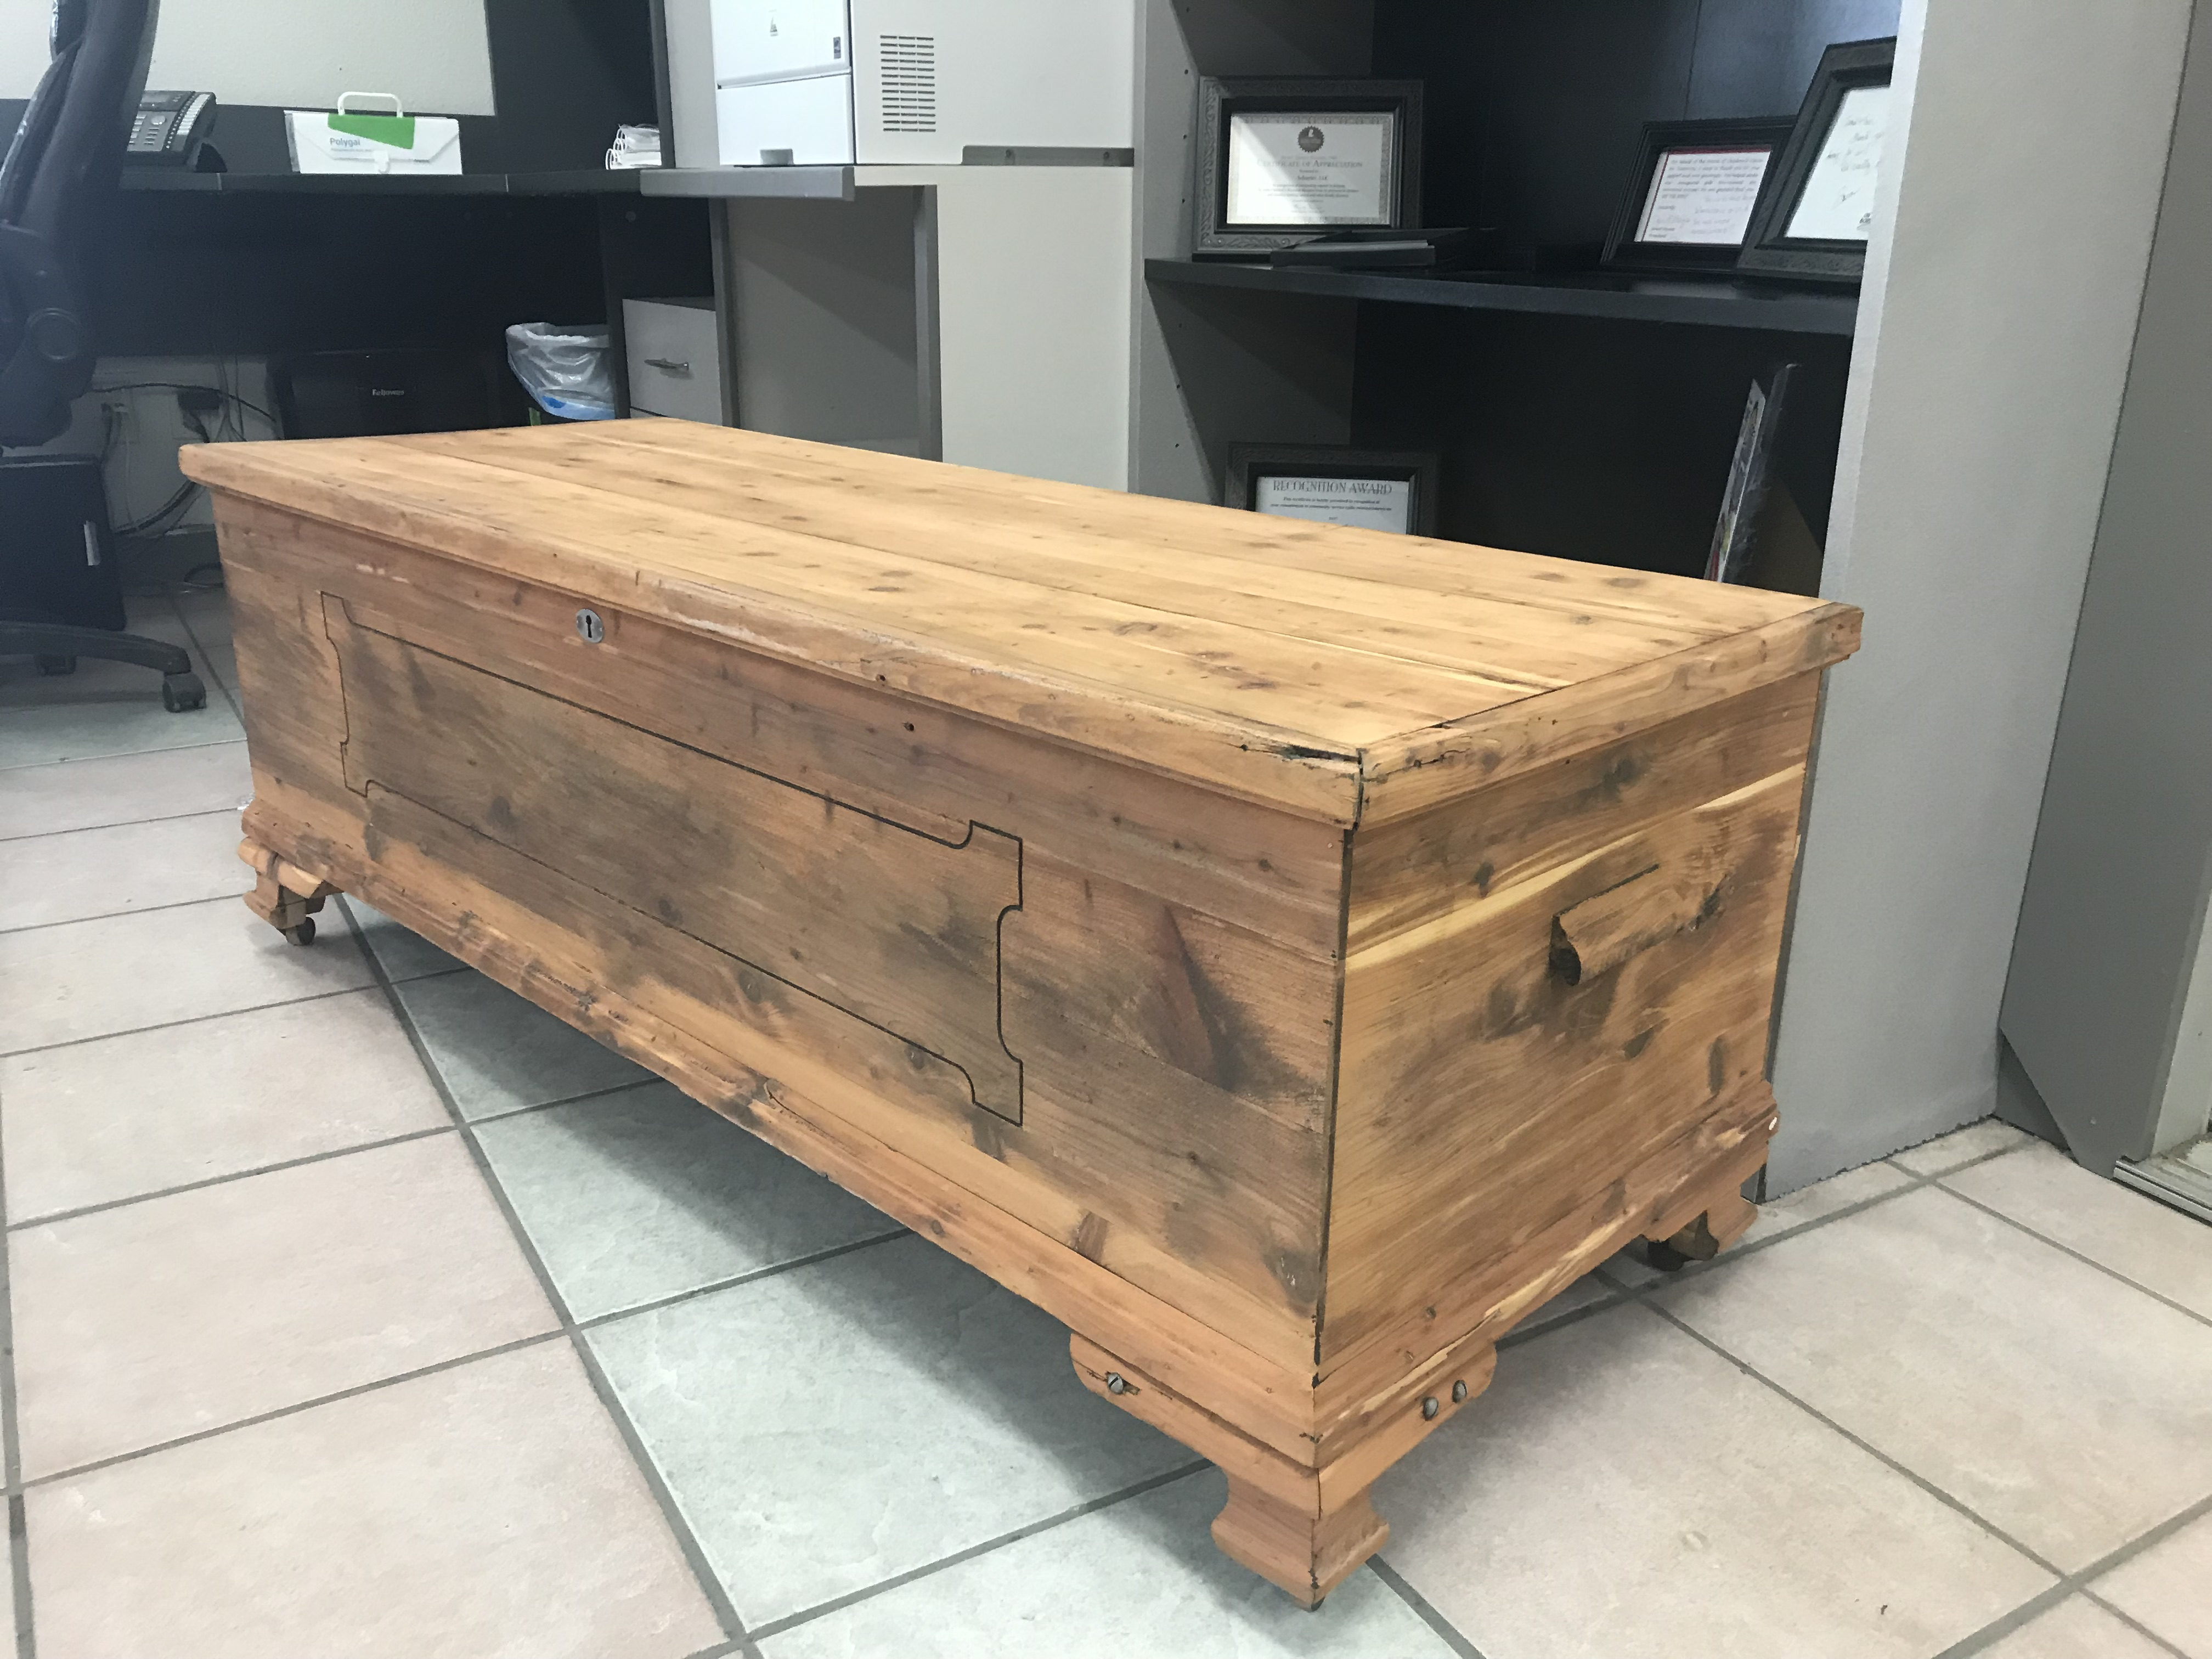 Wood Chest - After Blasting